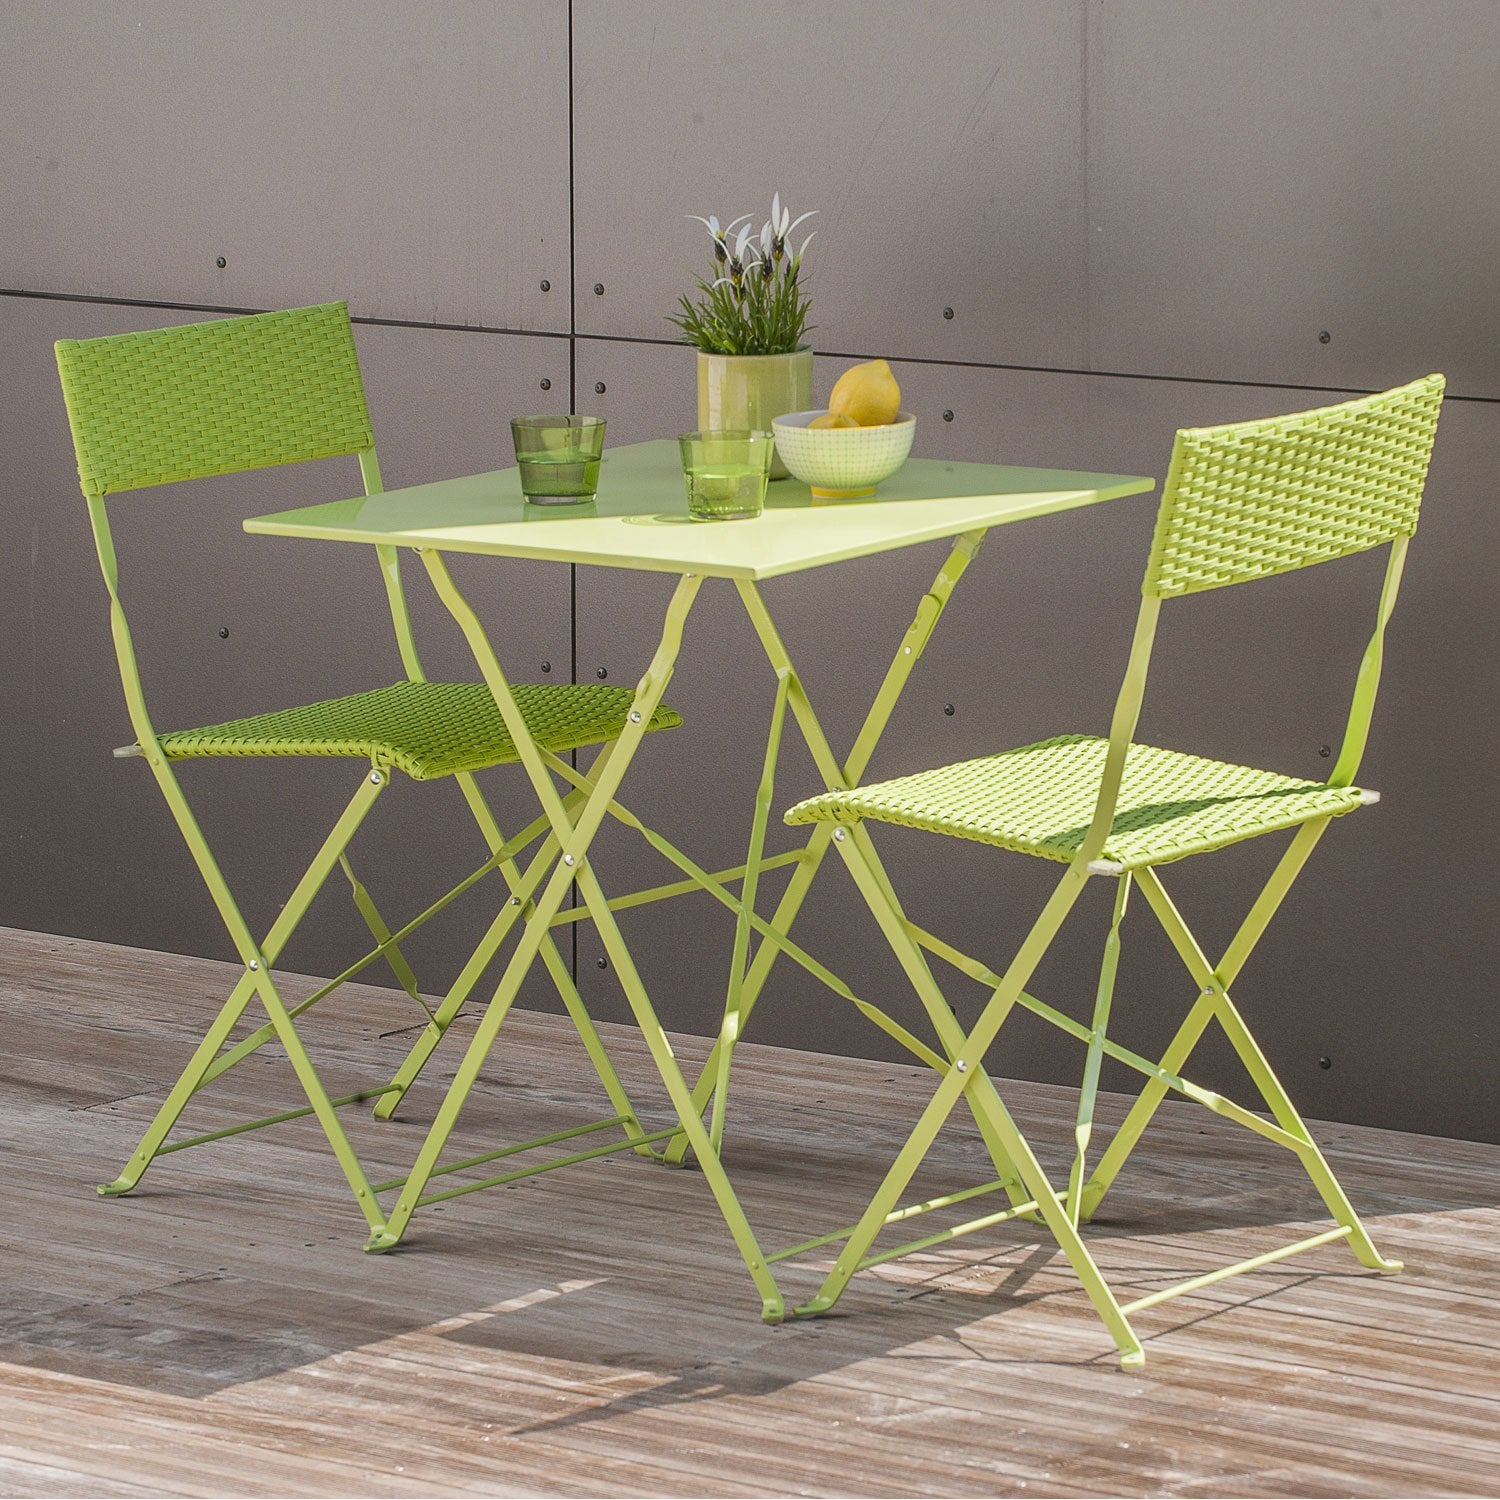 Salon de jardin mezzo acier vert 1 table gueridon 2 for Salon de jardin table et chaise